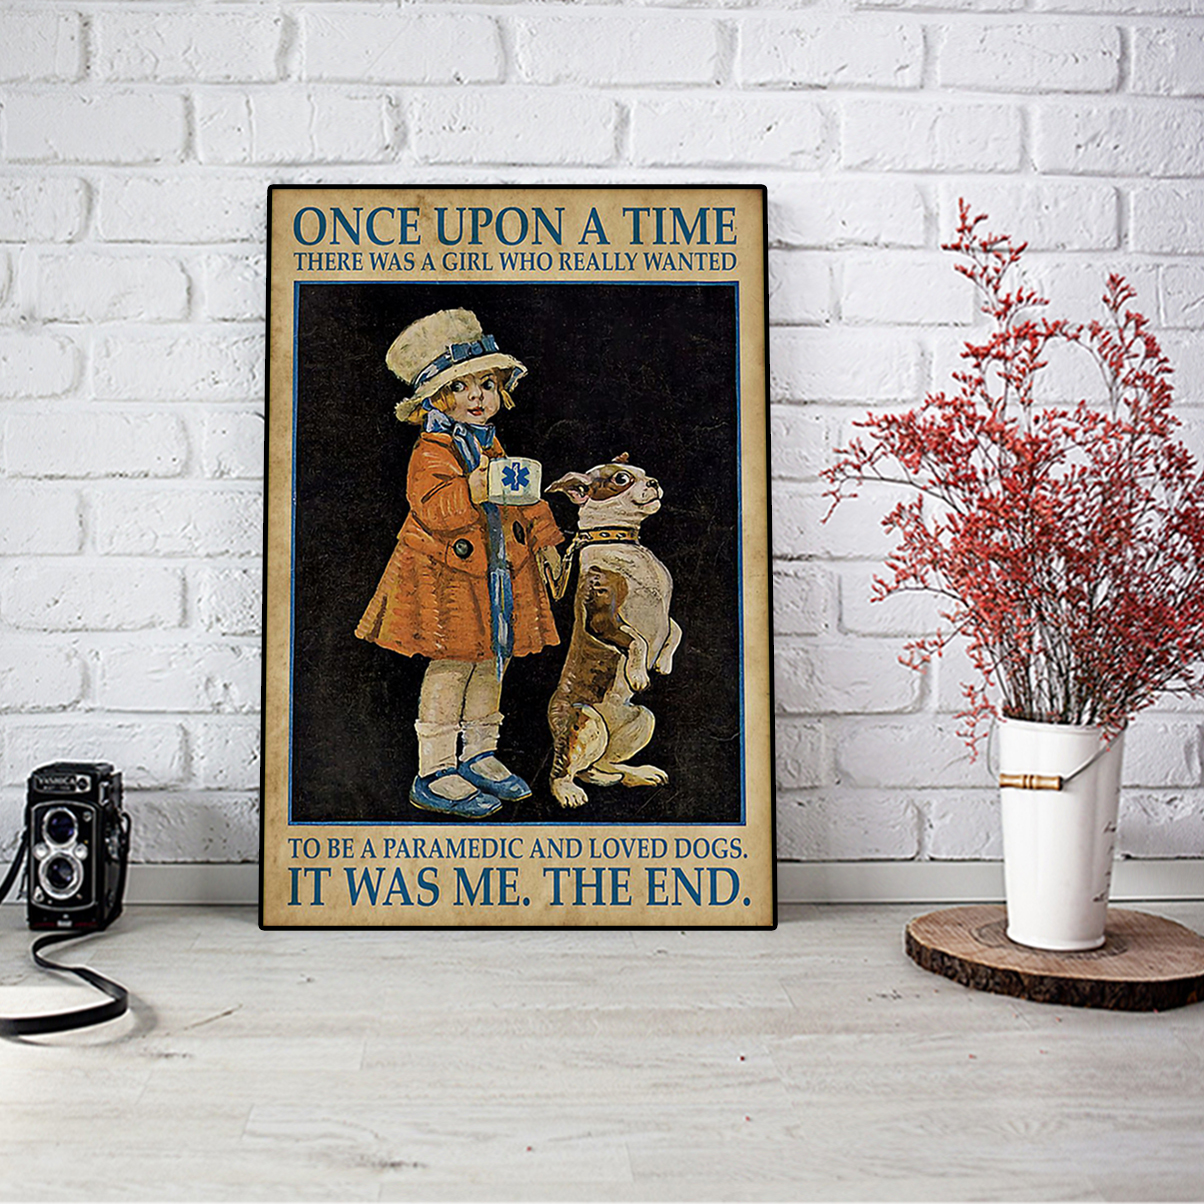 Once upon a time there was a girl who really wanted to be a paramedic and loved dogs poster A3